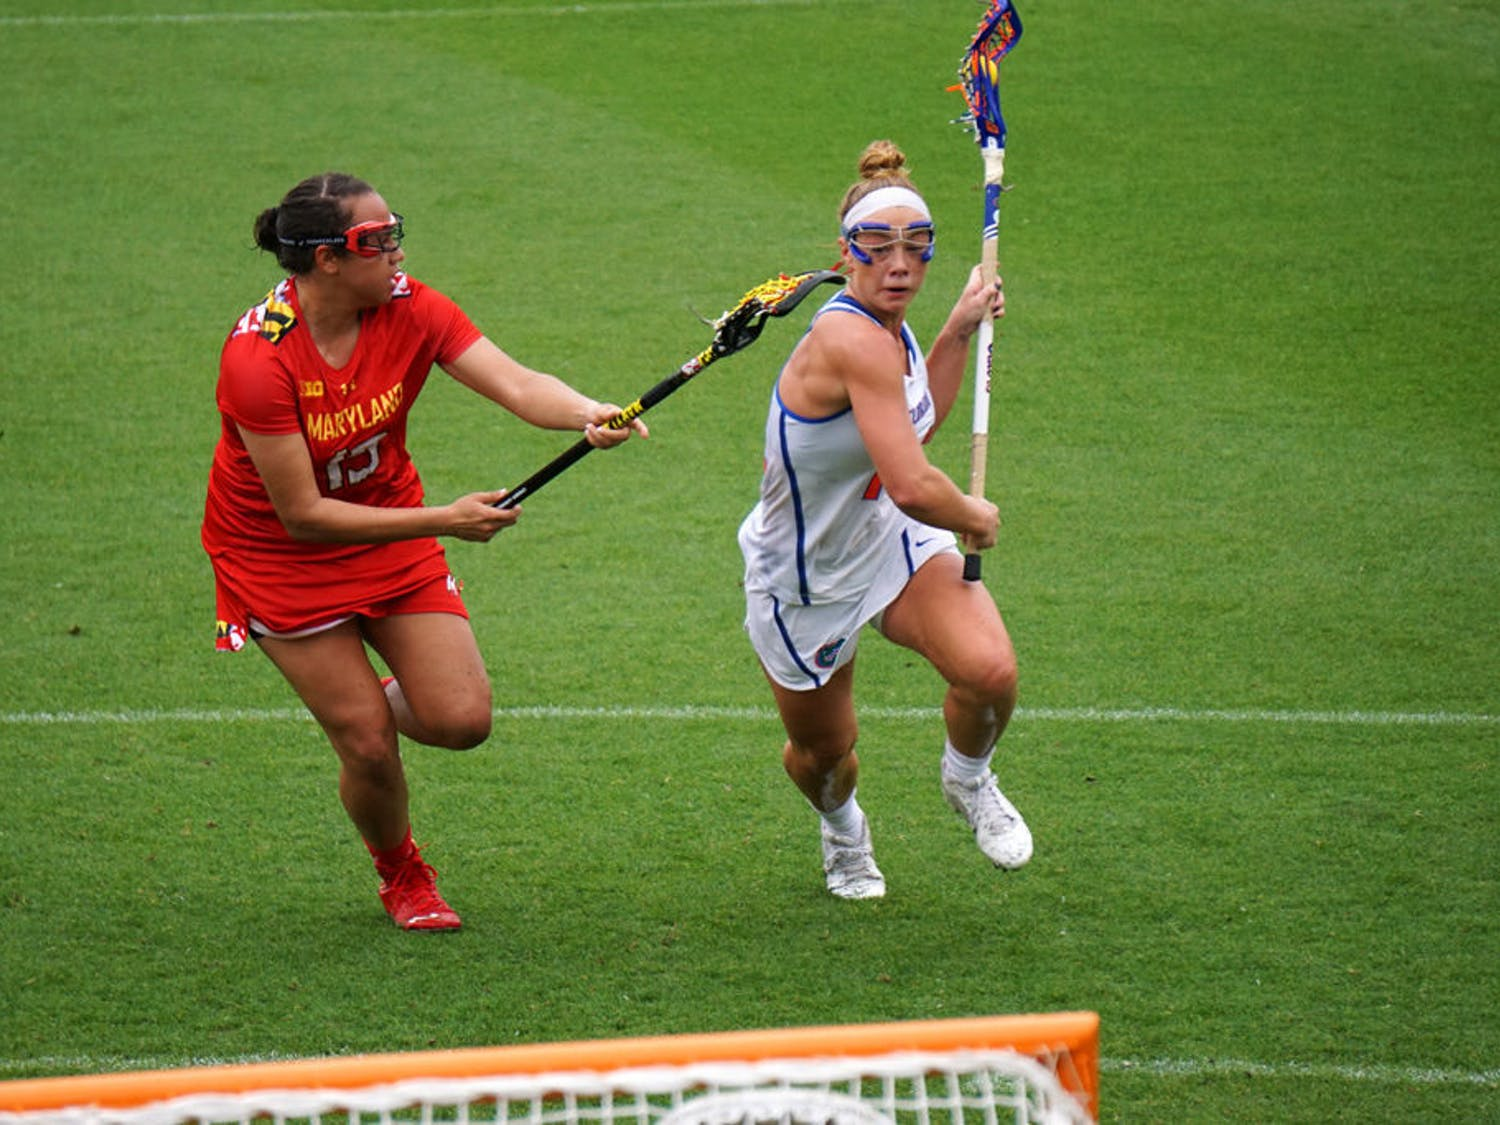 Attacker Lindsey Ronbeck returned to the Gators' lineup after missing the last three games.